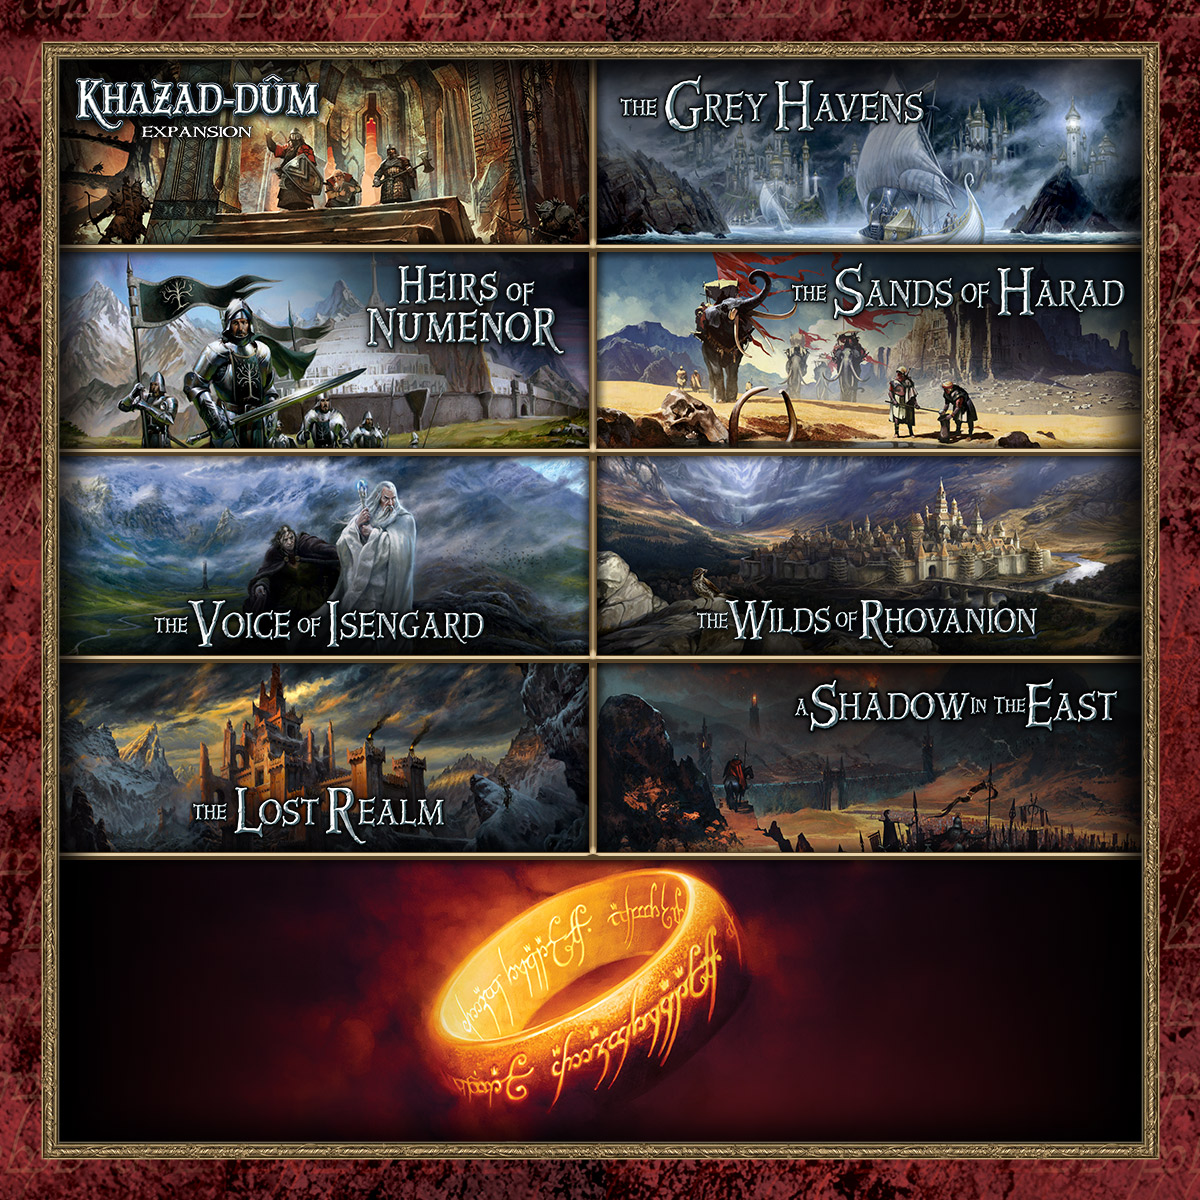 As our longest-running cooperative Living Card Game, The Lord of the Rings: The Card Game offers dozens of heroes and eight full cycles—as well as the Saga Expansions that invite you to play through the events of The Lord of the Rings trilogy yourself. #cardgame #sologame https://t.co/MoNMp9KbfQ